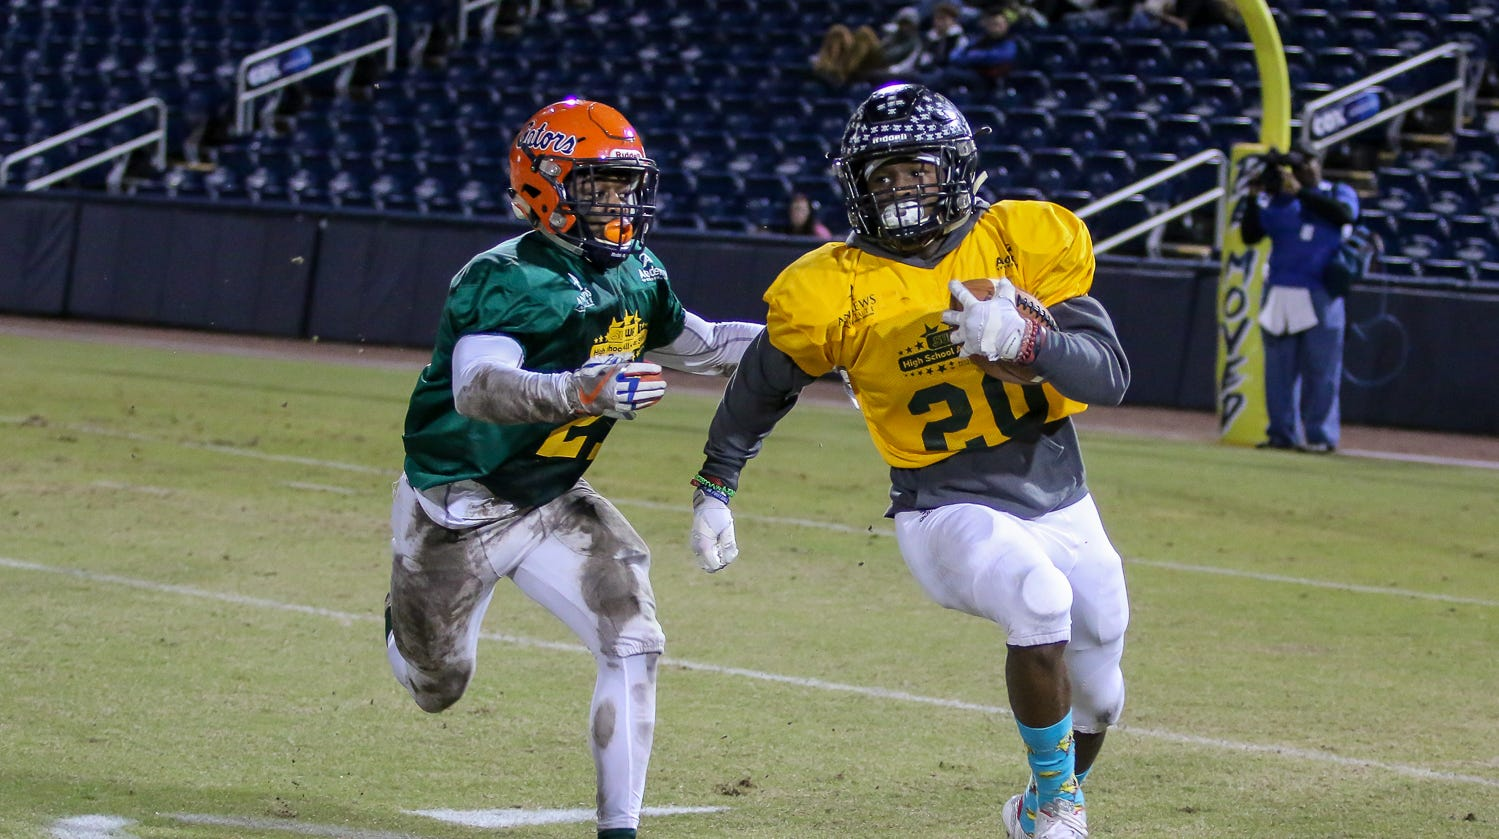 Escambia's Patrick Sanders (21) chases after Navarre's Chris Williams (20) in Pensacola Sports' annual Subway High School All-Star Game at Blue Wahoos Stadium on Friday, December 14, 2018. Players from Escambia County schools made up the West team and players from schools in Santa Rosa & Okaloosa counties made up the East team.